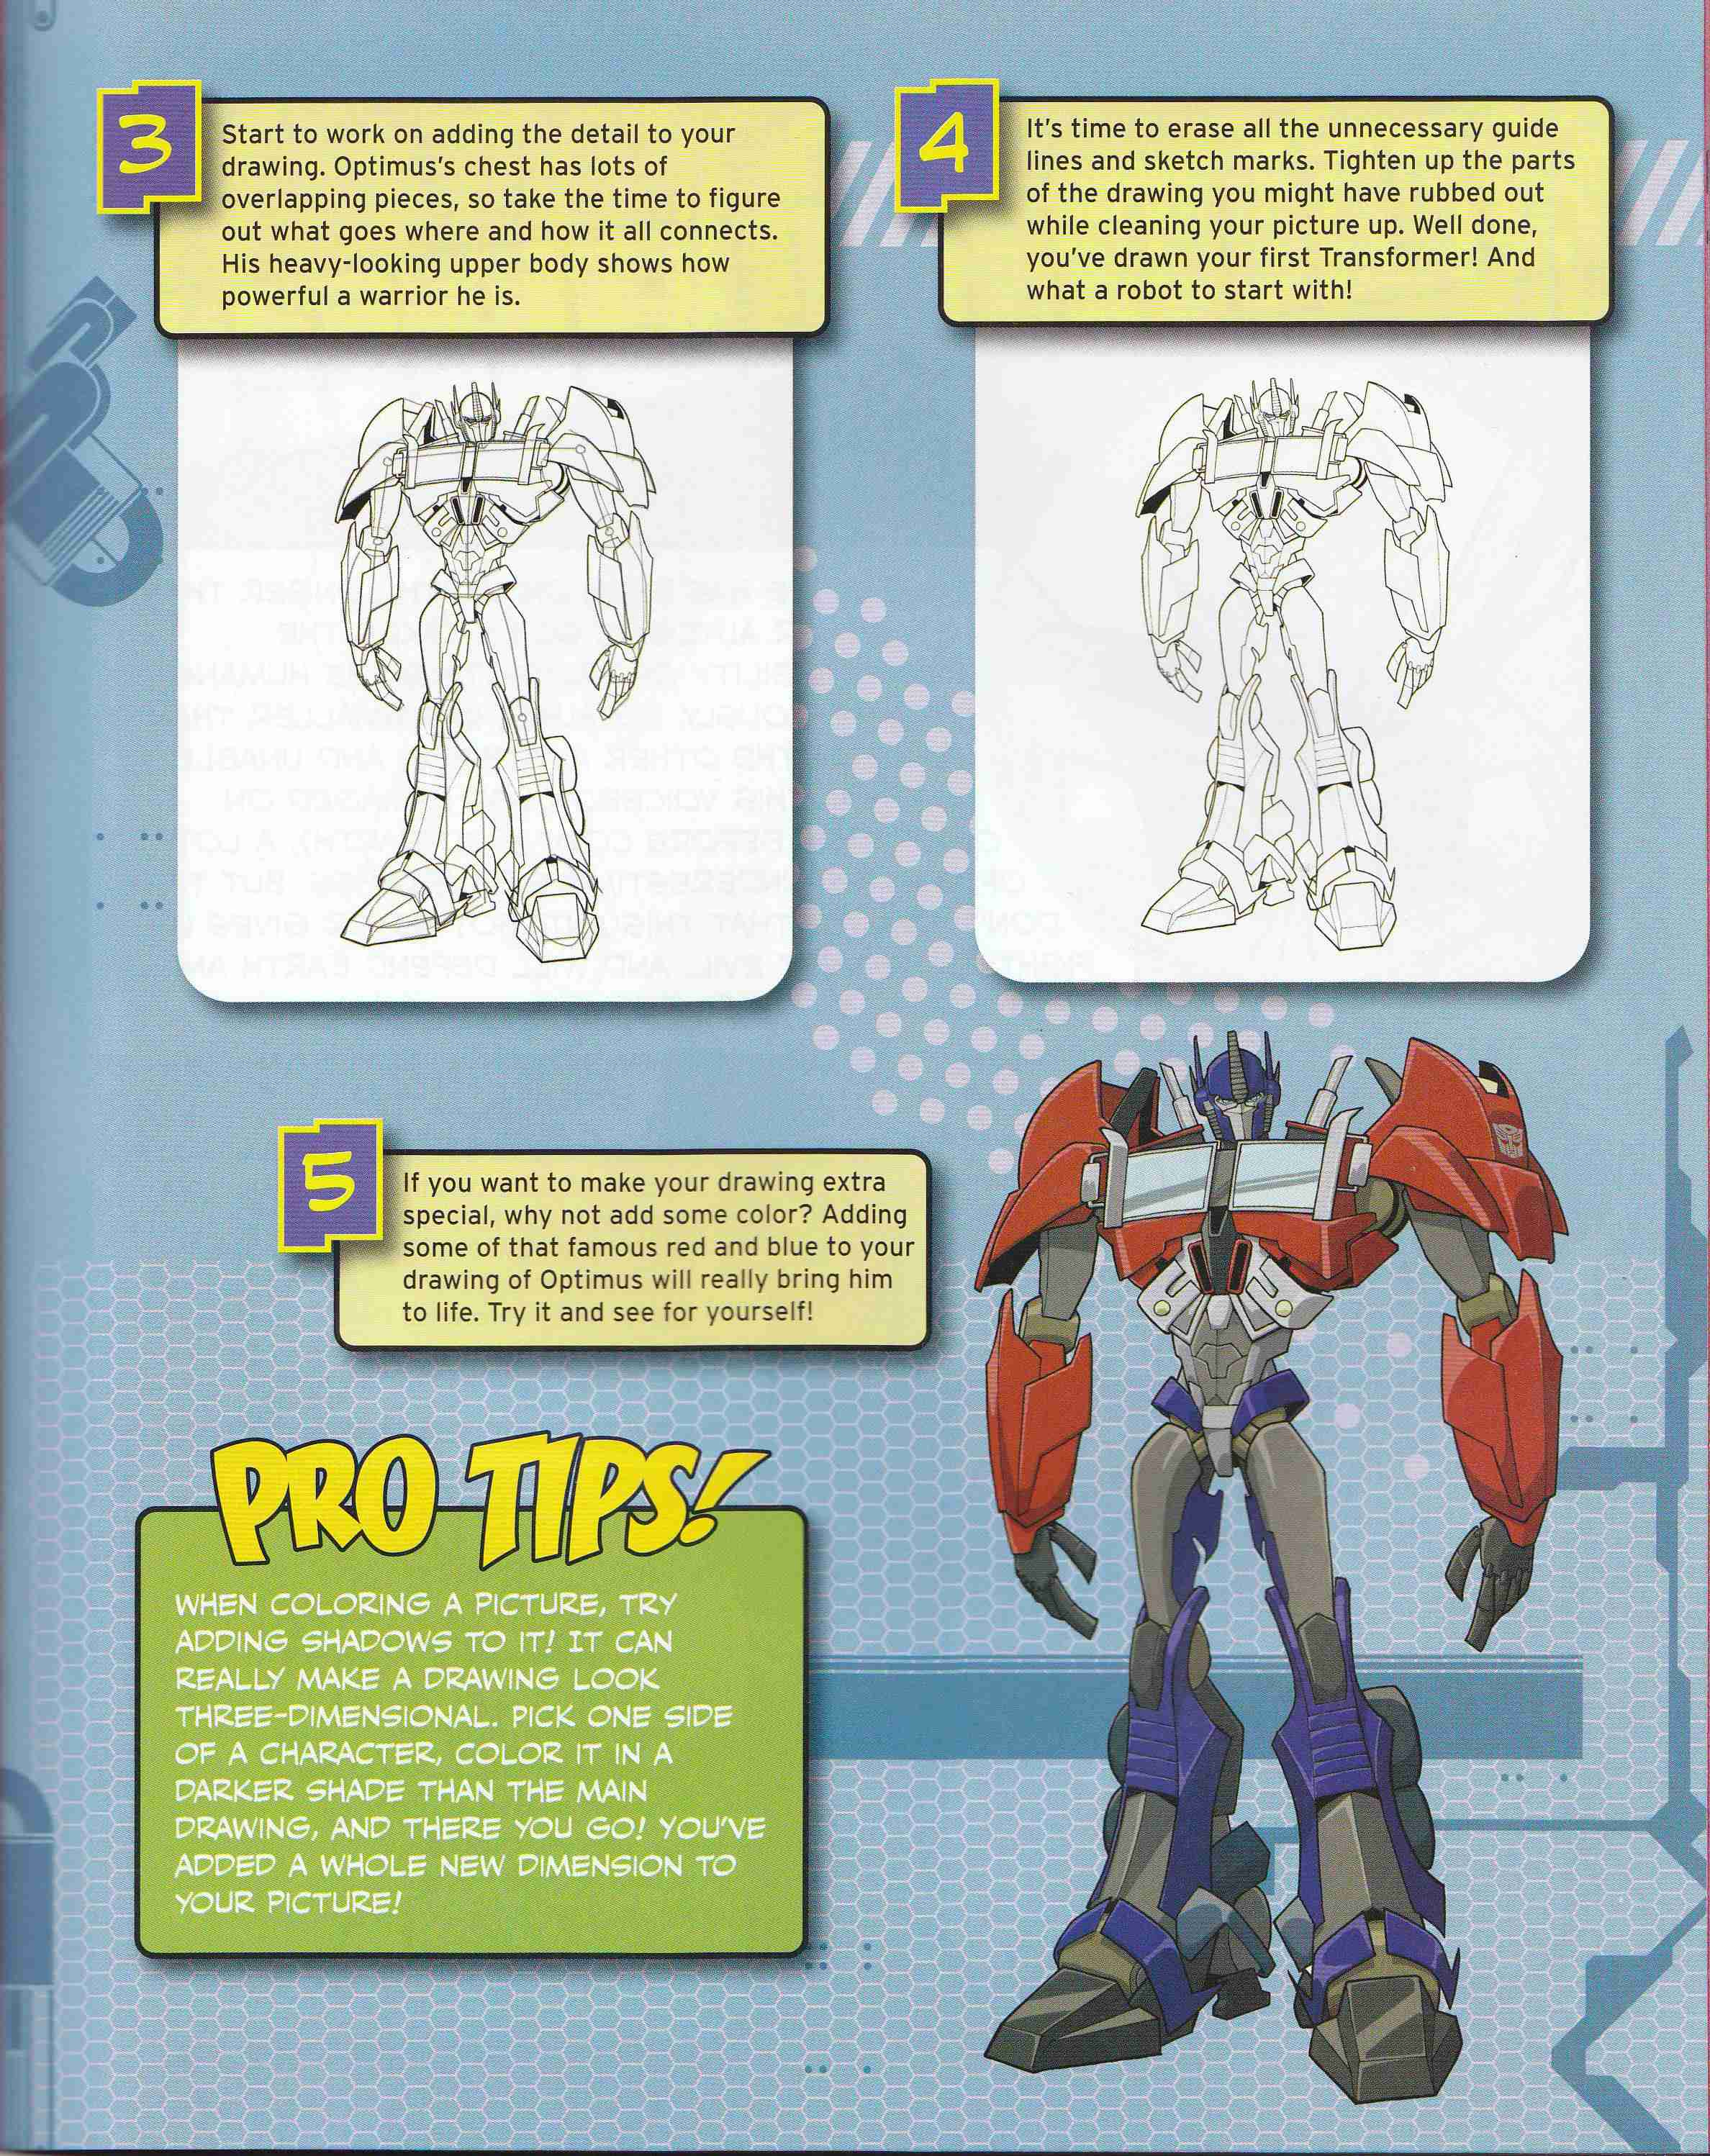 Drawn transformers Drawing Transformers Characters Good Transformers truly but Not